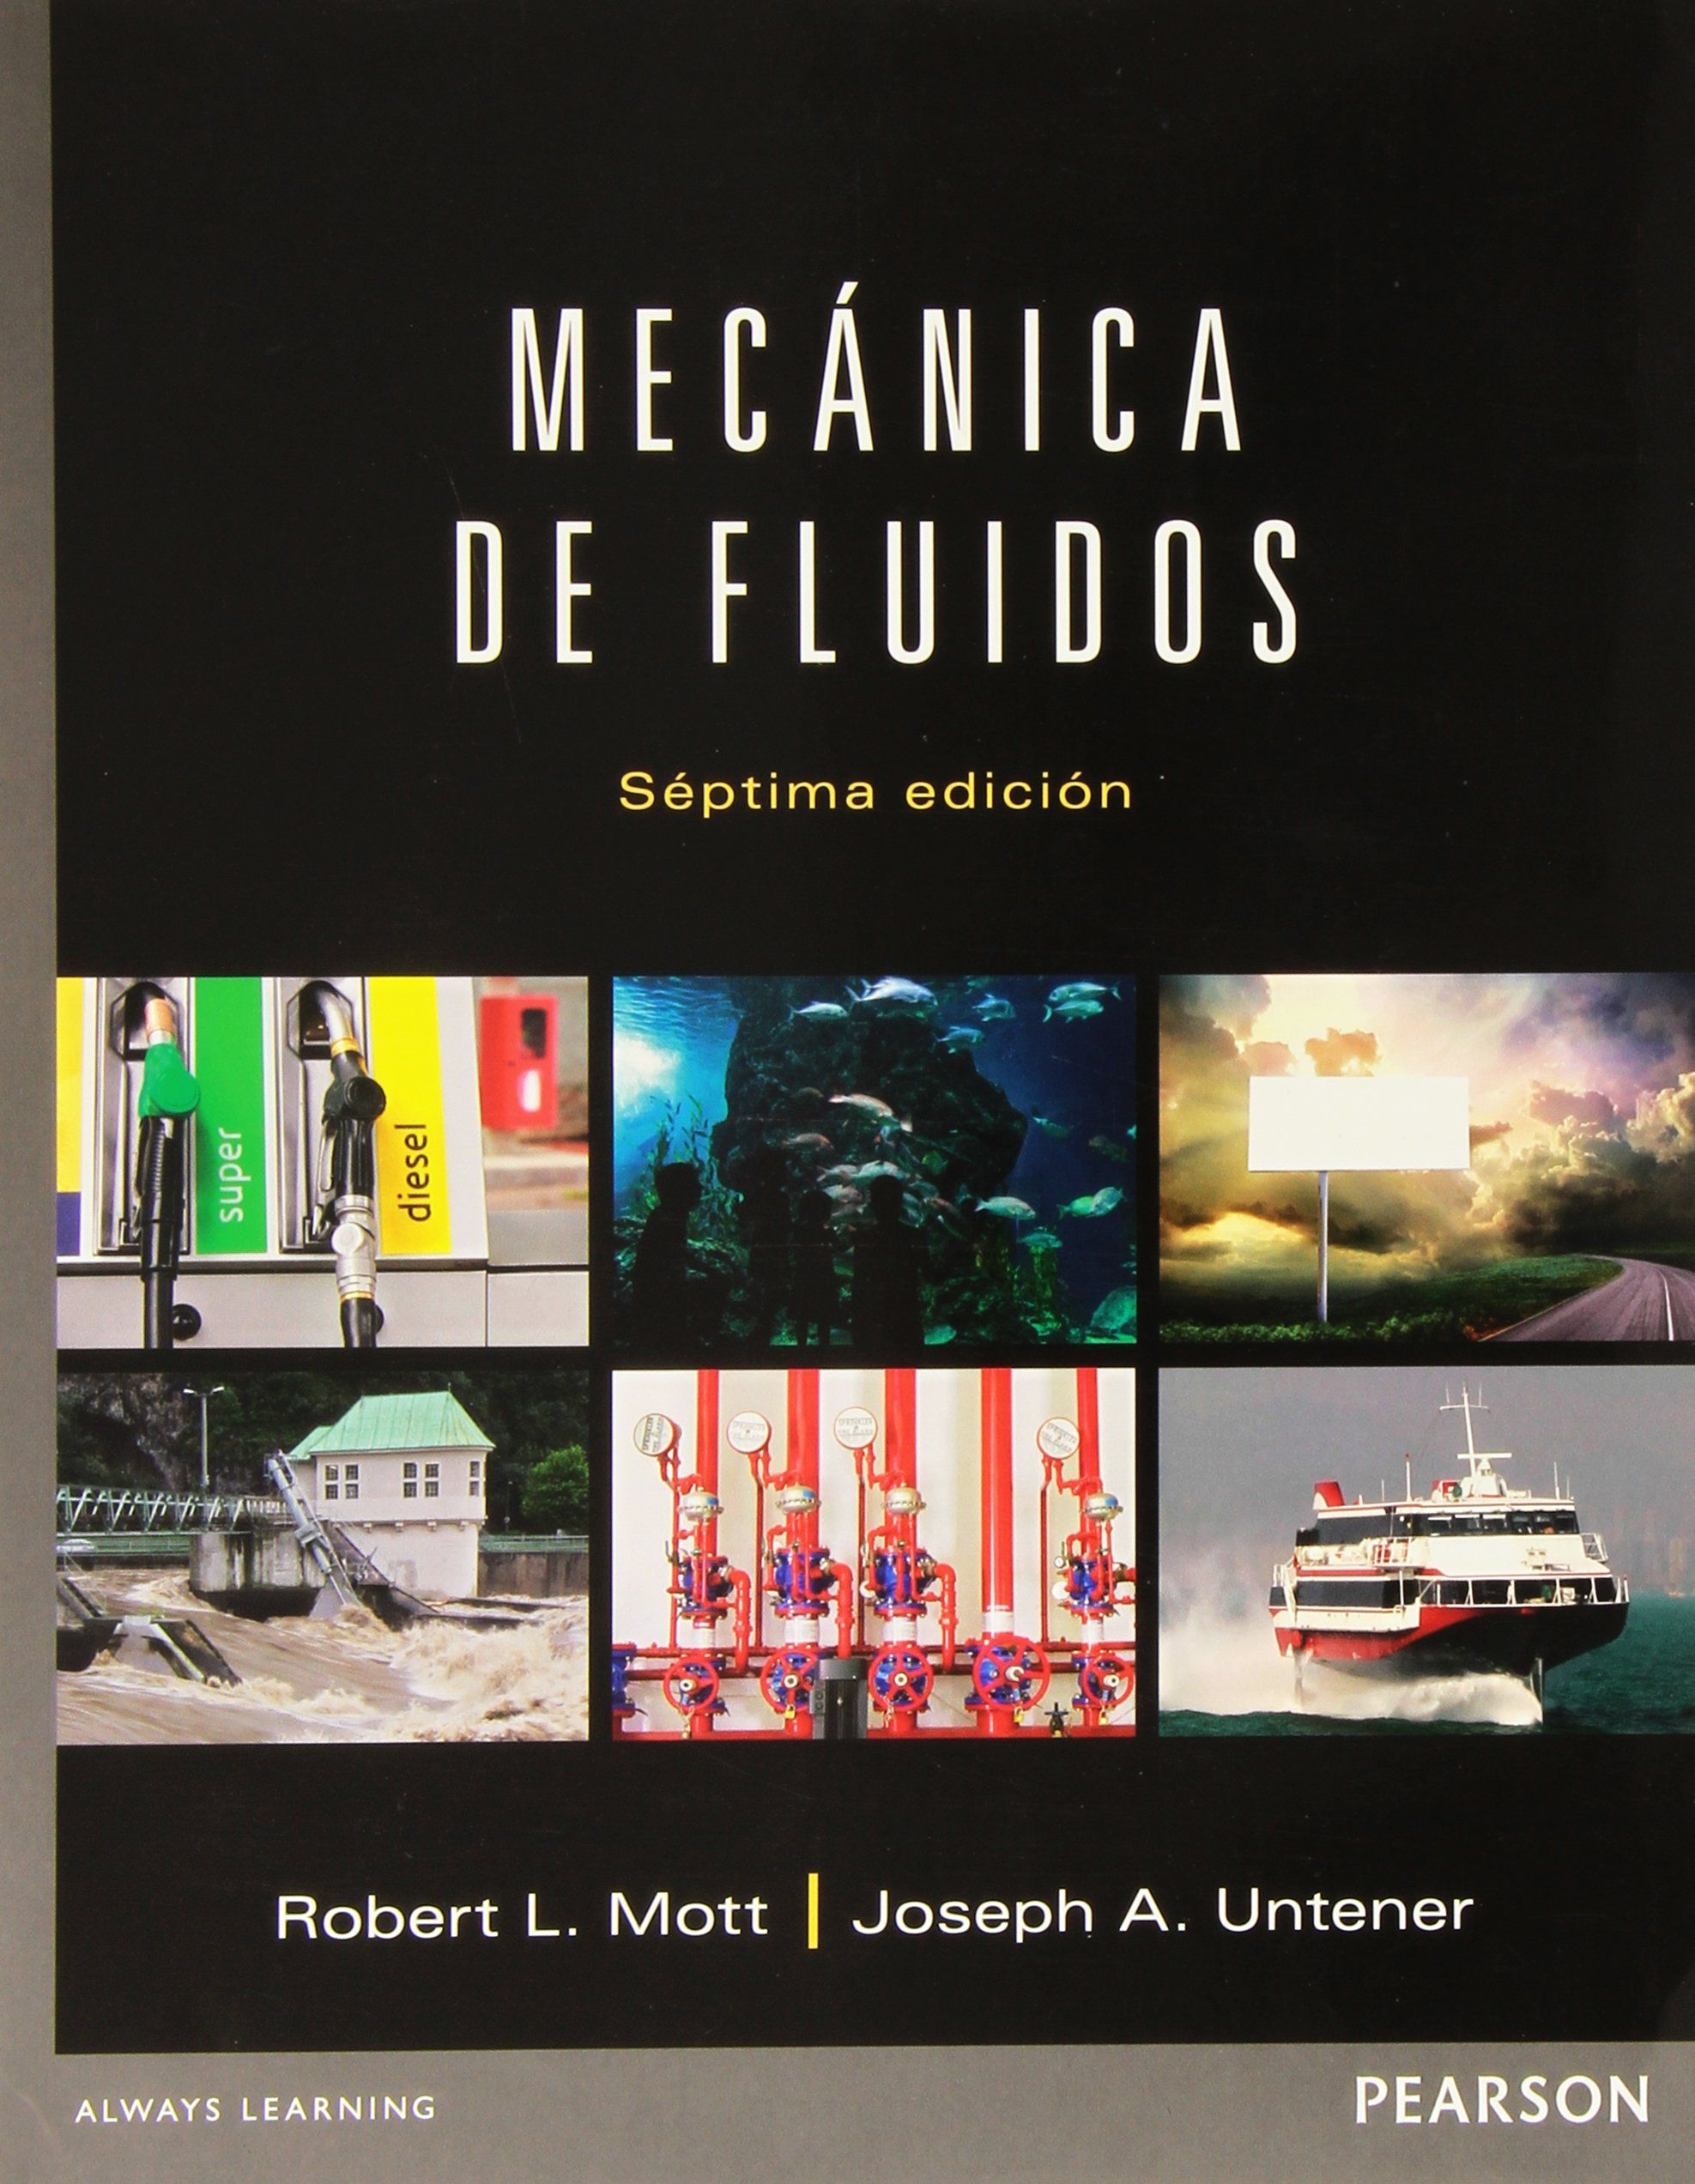 Mecánica De Fluidos Robert L Mott Joseph A Untener Traducción Jesús Elmer Murrieta Murrieta Revisión Técnica R Fluid Mechanics How To Apply Mechanic